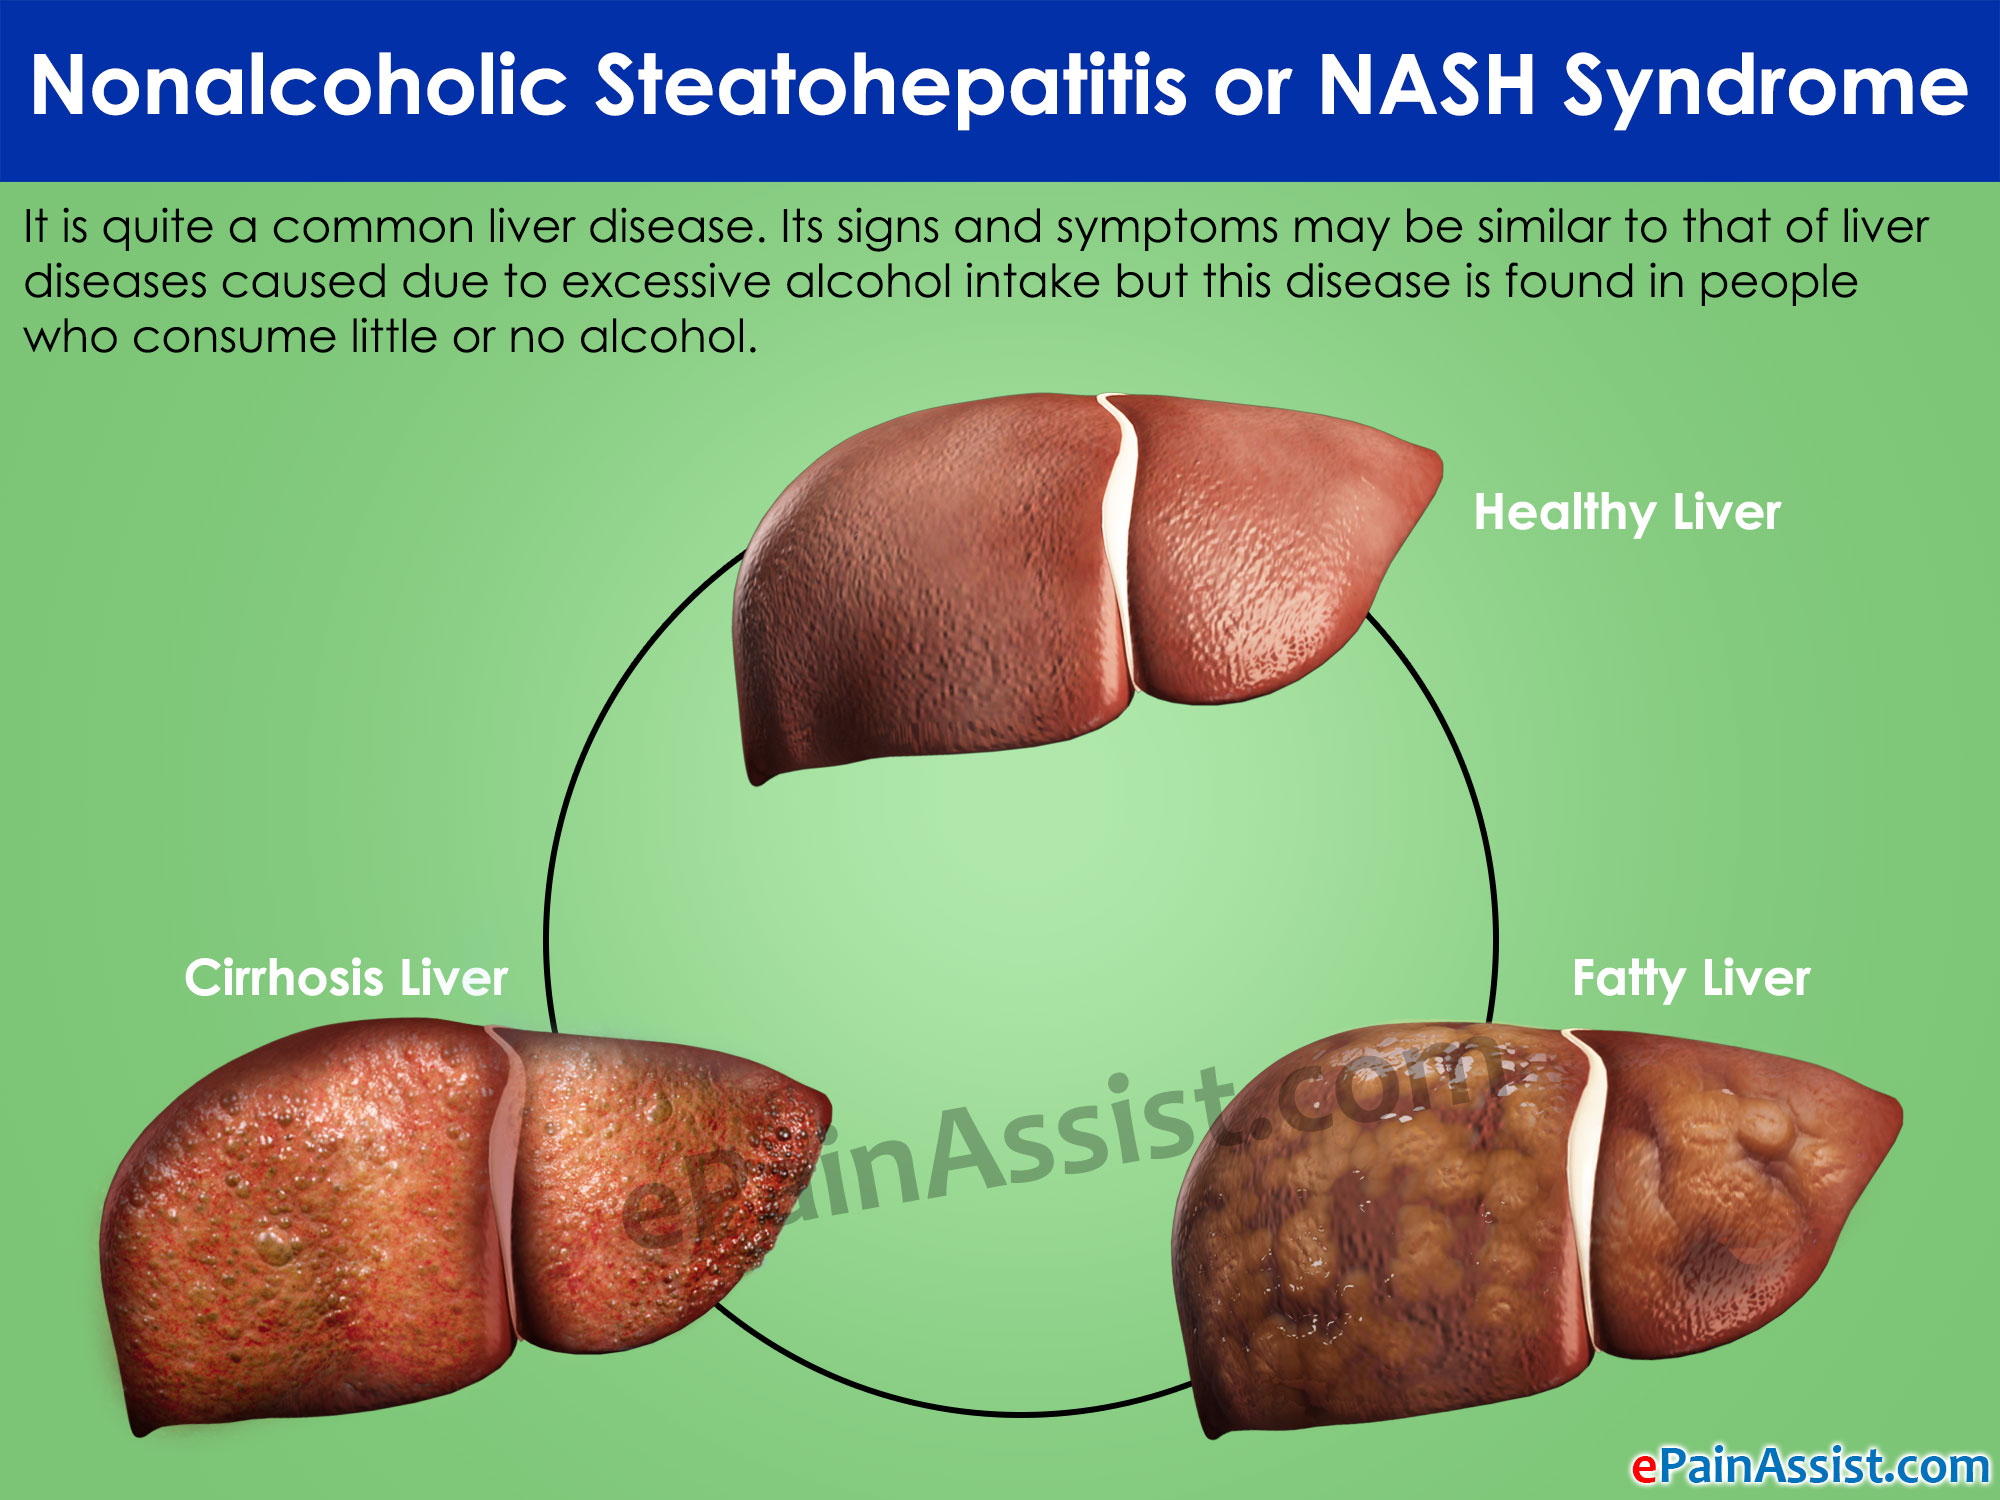 Nonalcoholic Steatohepatitis or NASH Syndrome